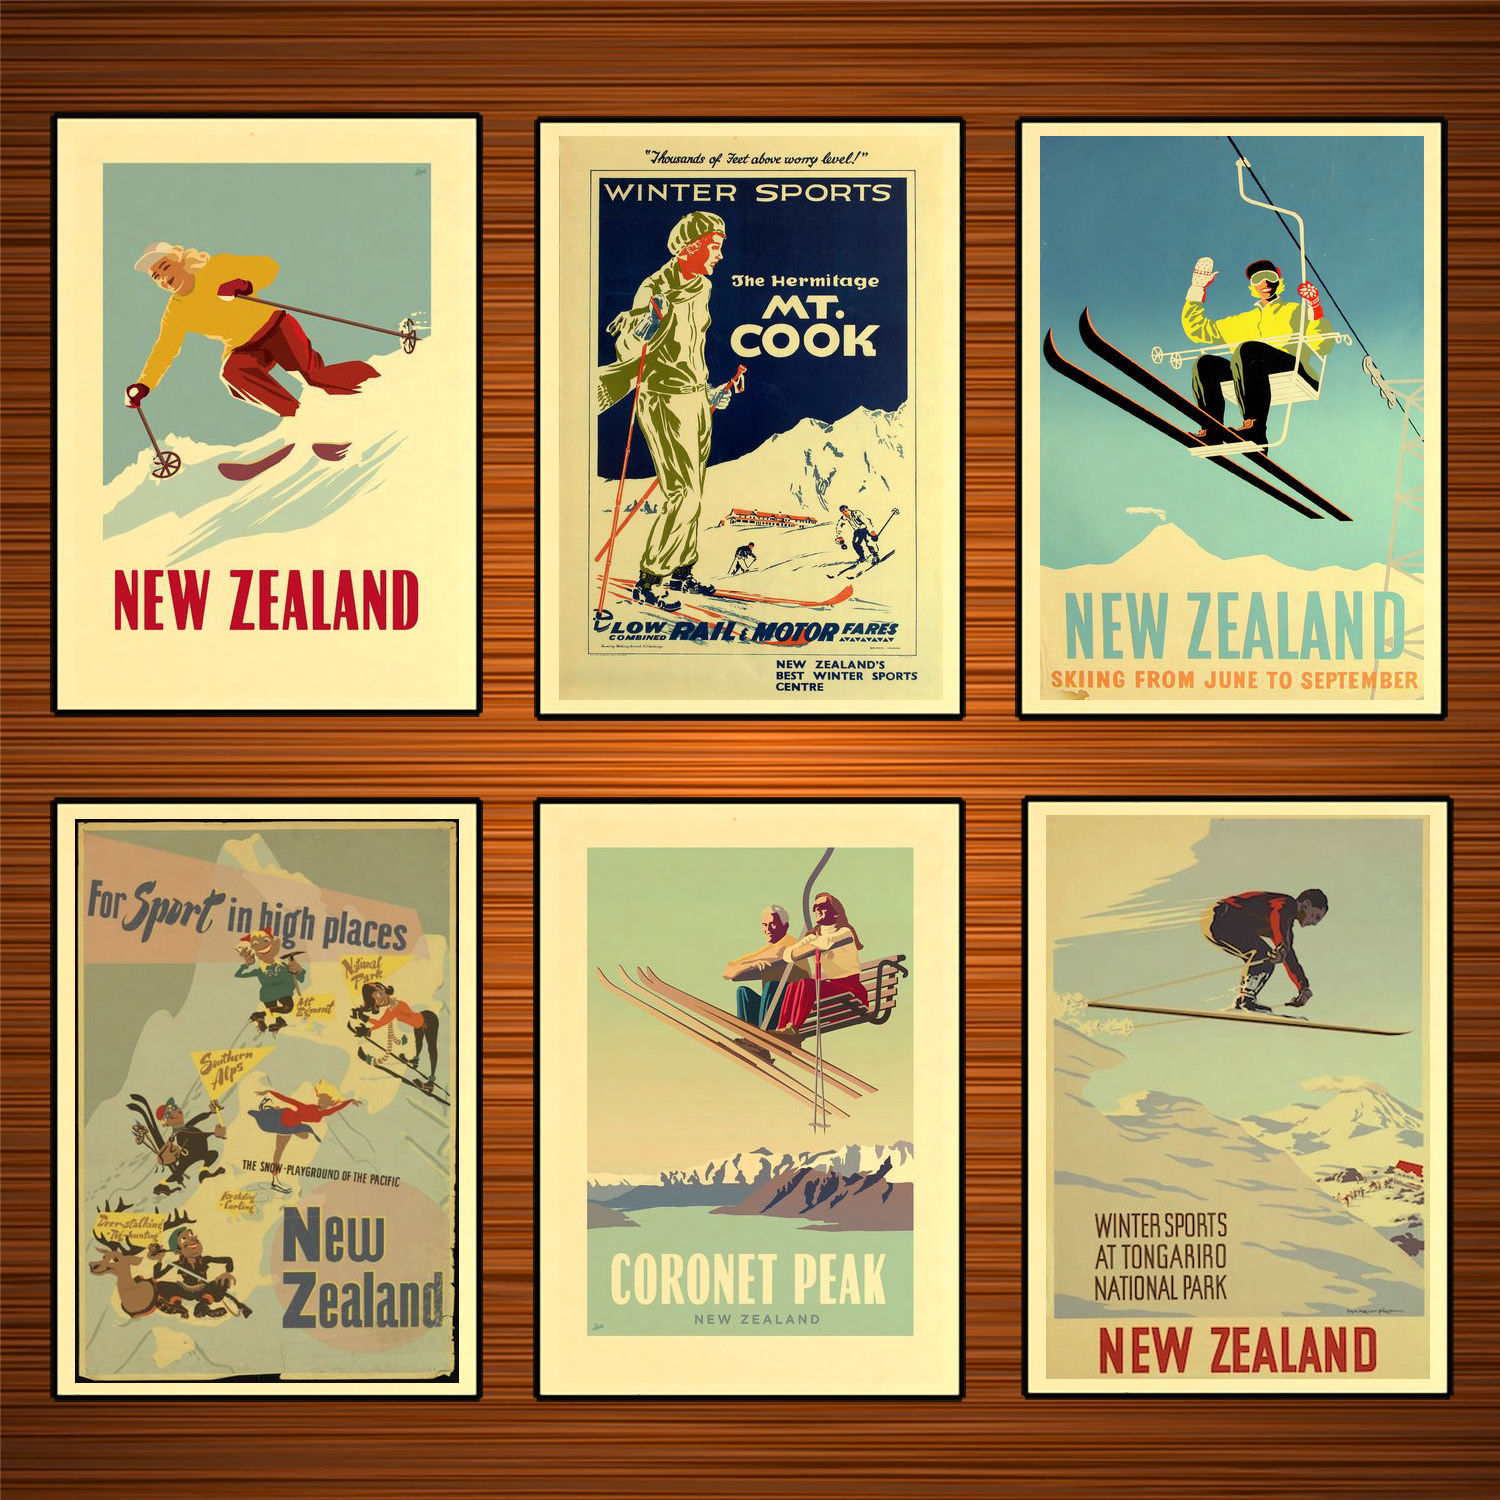 New Zealand NZ For Sport in High Places Skiing Travel Classic Wall Stickers Canvas Painting Vintage Poster Home Bar Decor Gift image